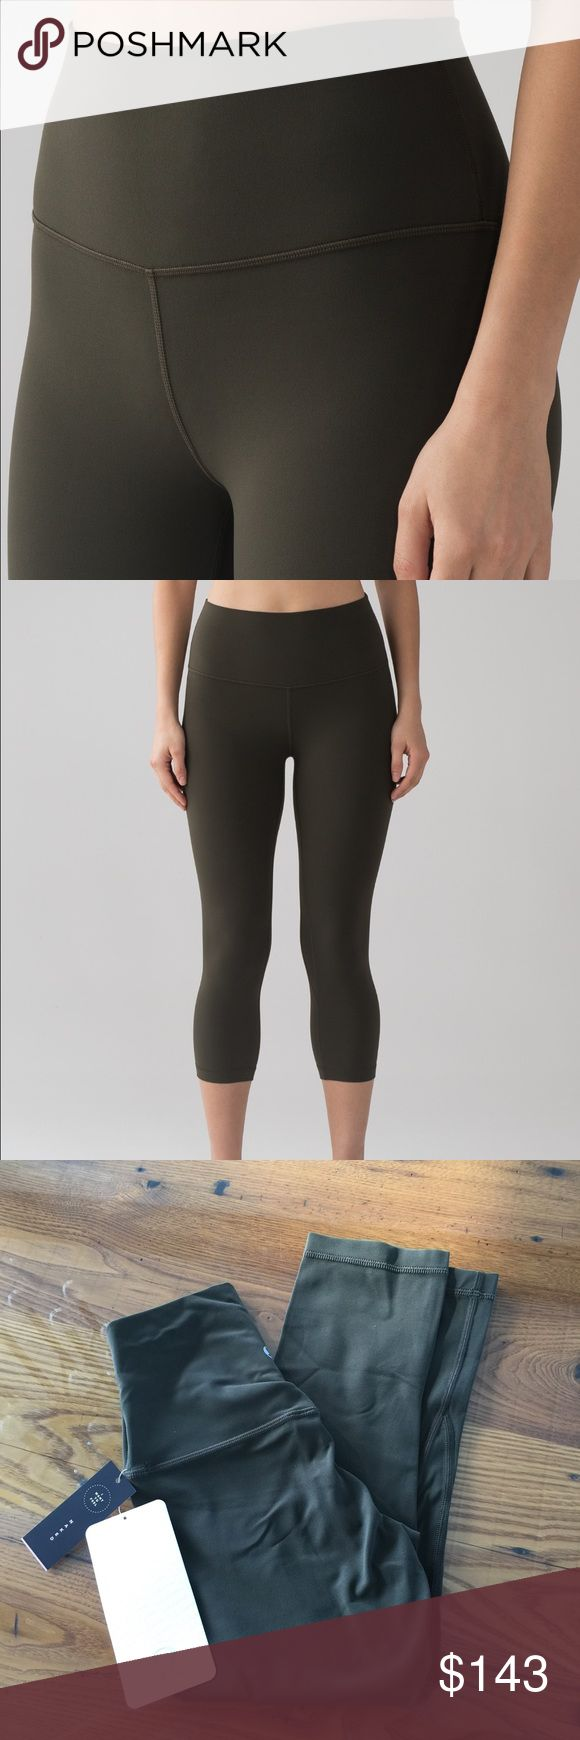 Lululemon Dark Olive Align Crops Color is hard to capture. It's closer to the stock photos but not as dark and more green. Last photo is next to Fatigue Green Aligns.   Size 2 is sold out online.  Nulu  High rise  Crop length   Lower on Ⓜ lululemon athletica Pants Leggings